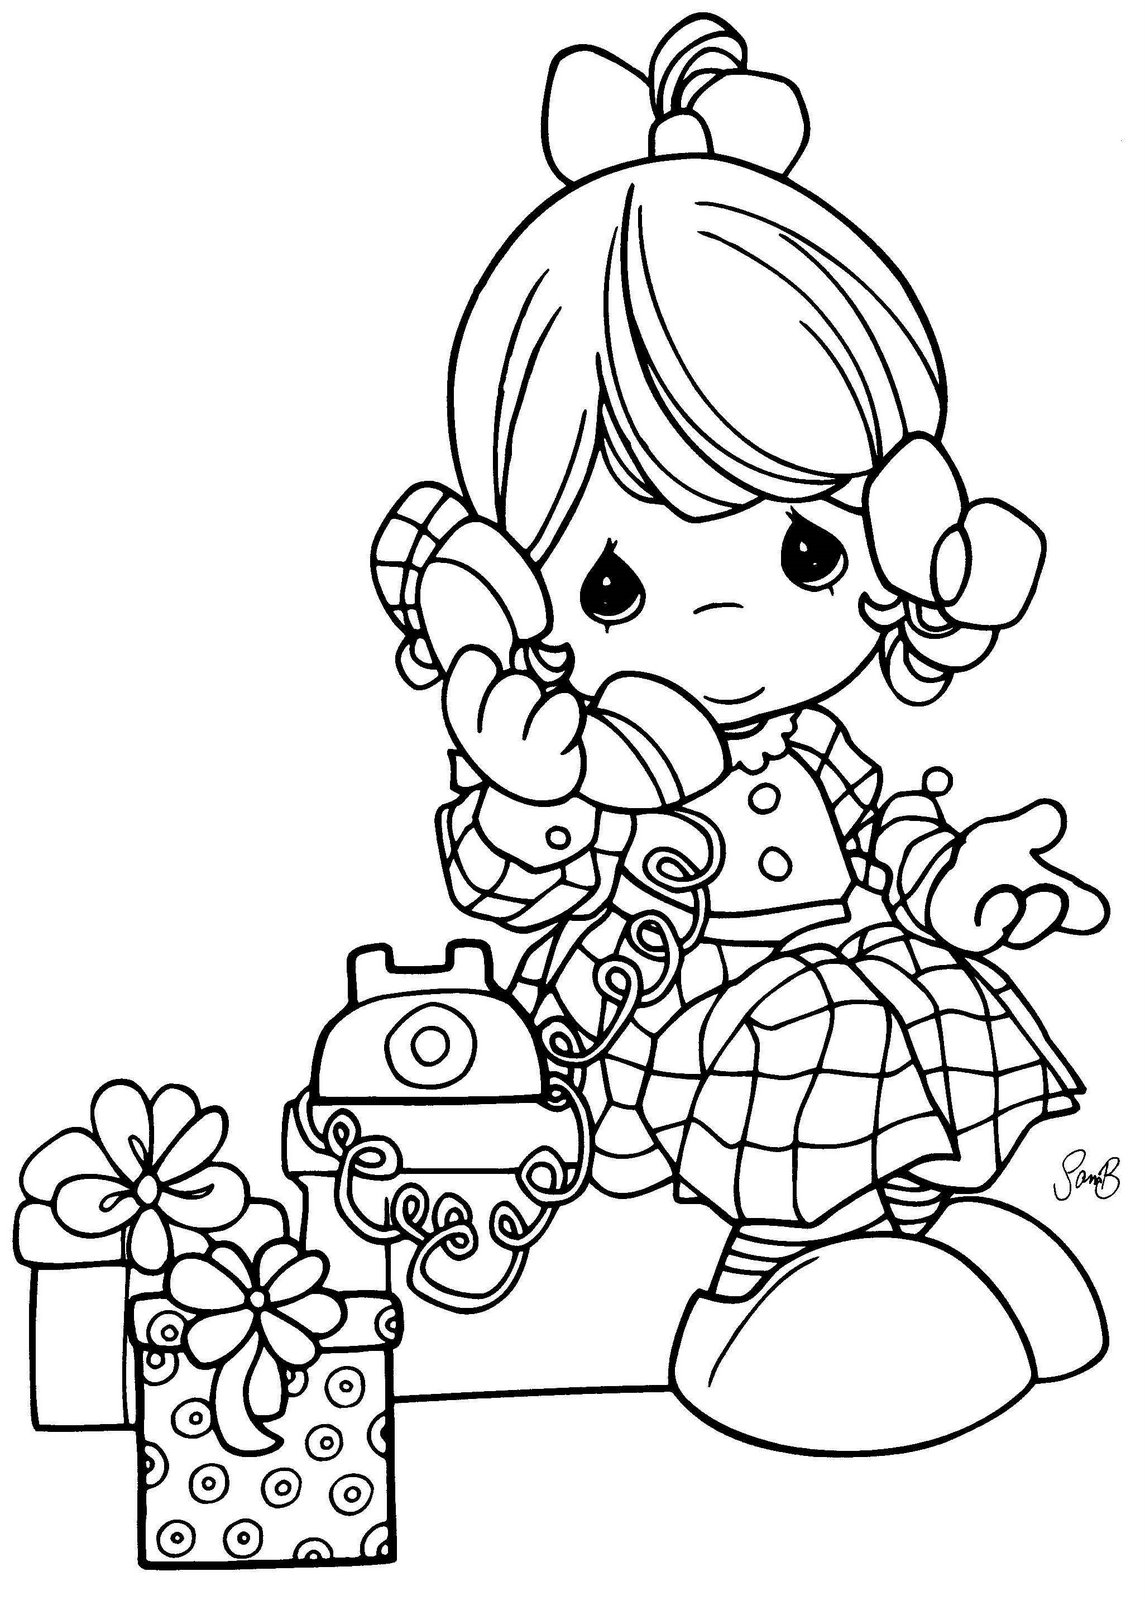 Precious moments drawings coloring girl with phone for Coloring pages of precious moments